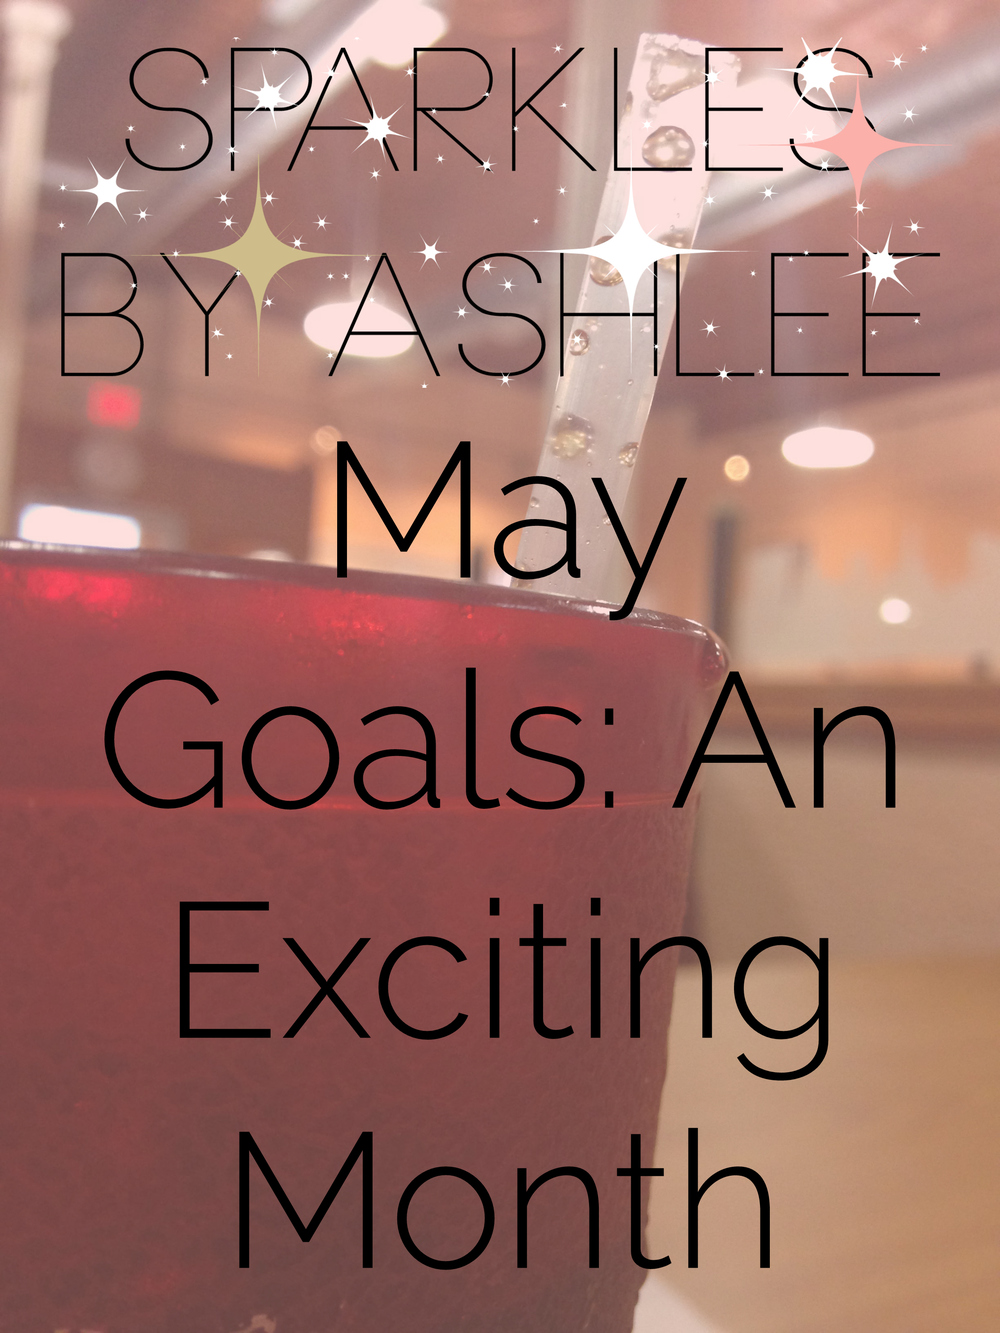 May-Goals-An-Exciting-Month-Sparkles-by-Ashlee.jpg